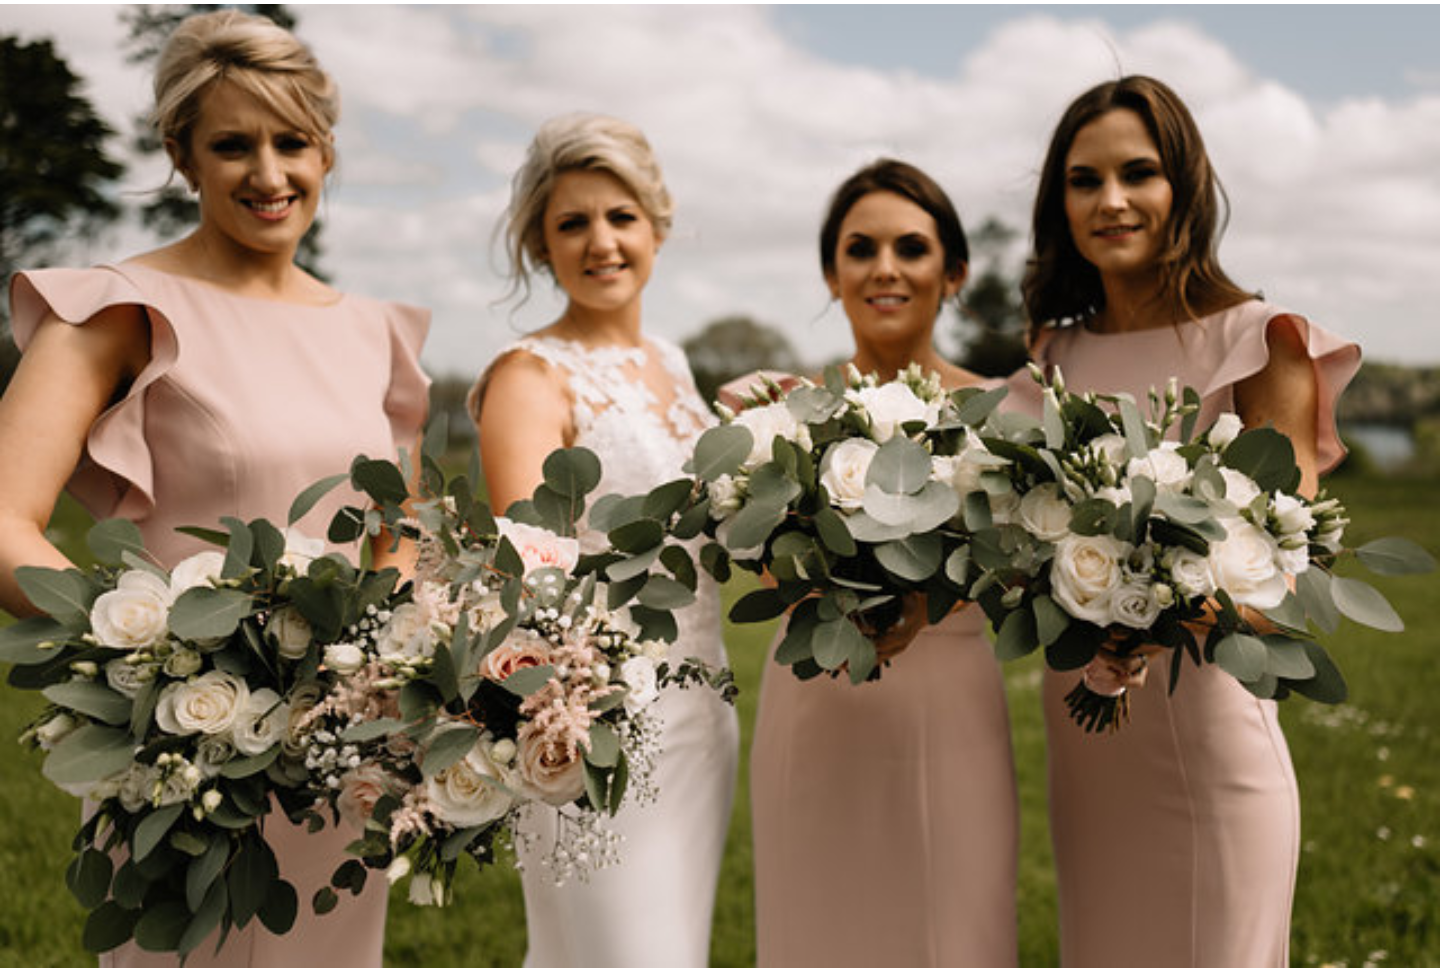 Edel and her best girls wearing  Cecelia in Smoked Blush  - Photo  Art Wedding Photography